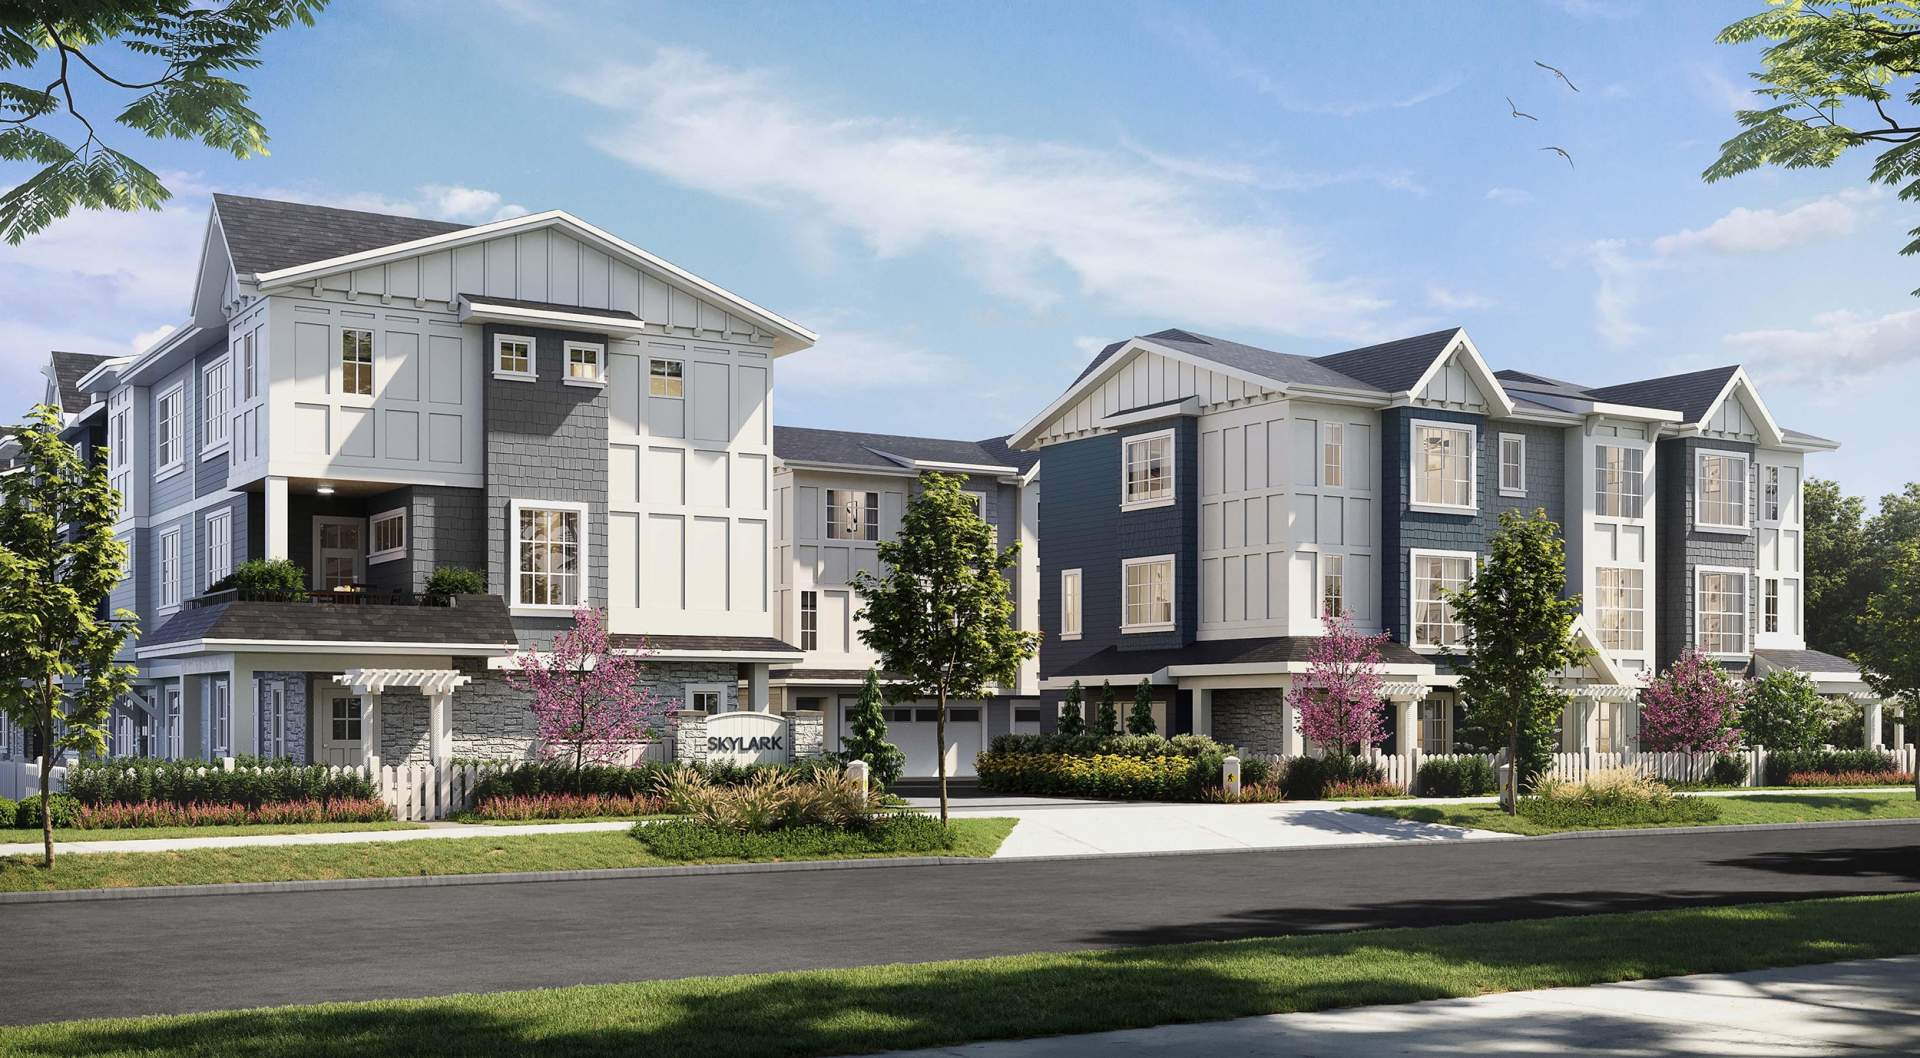 Skylark Langley Township By Pinora Homes – Plans, Availability, Prices